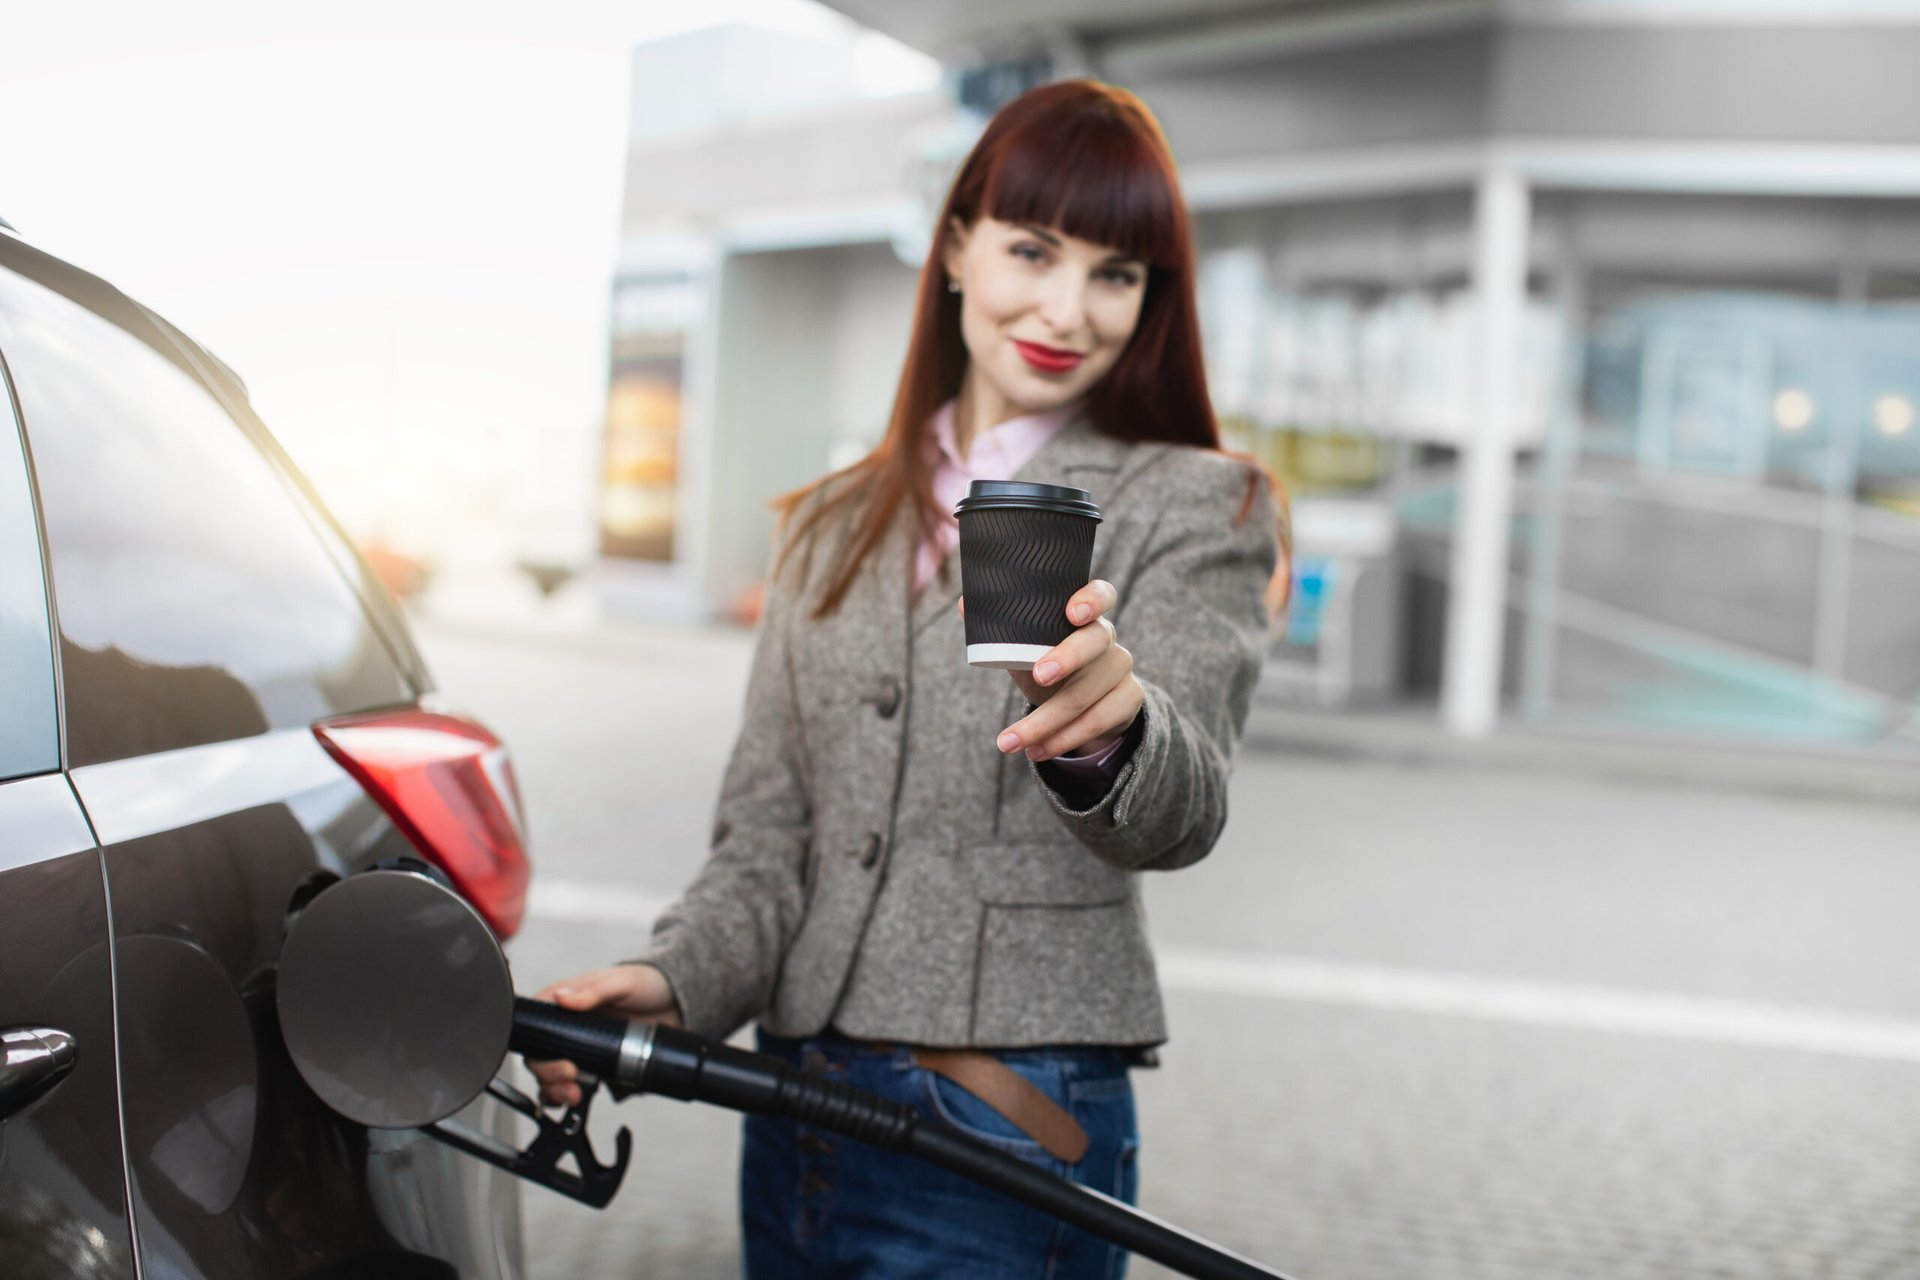 Woman holding coffee while pumping gas